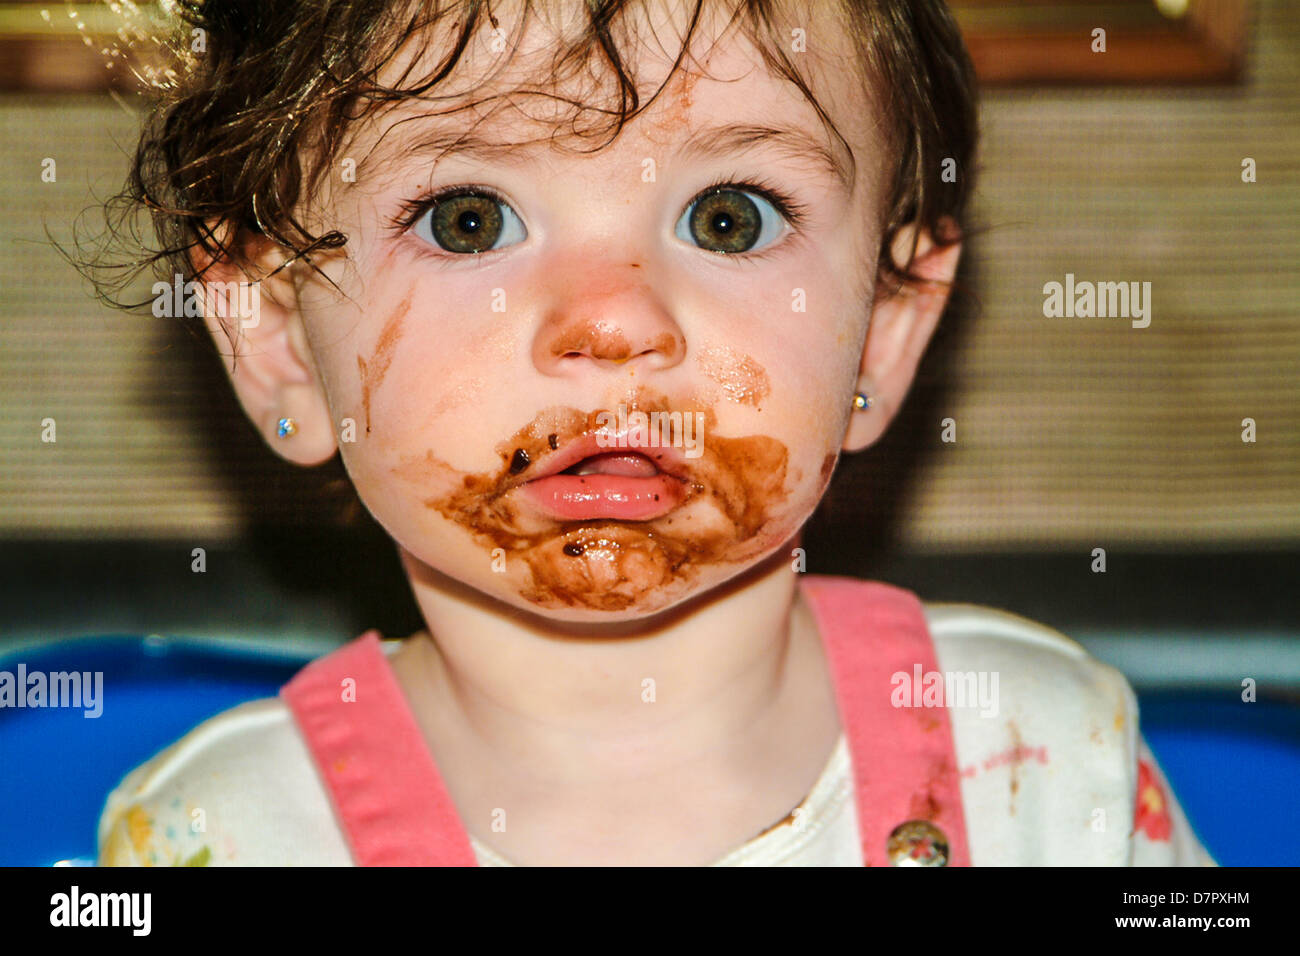 Baby with chocolate face enjoying birthday celebration after ...